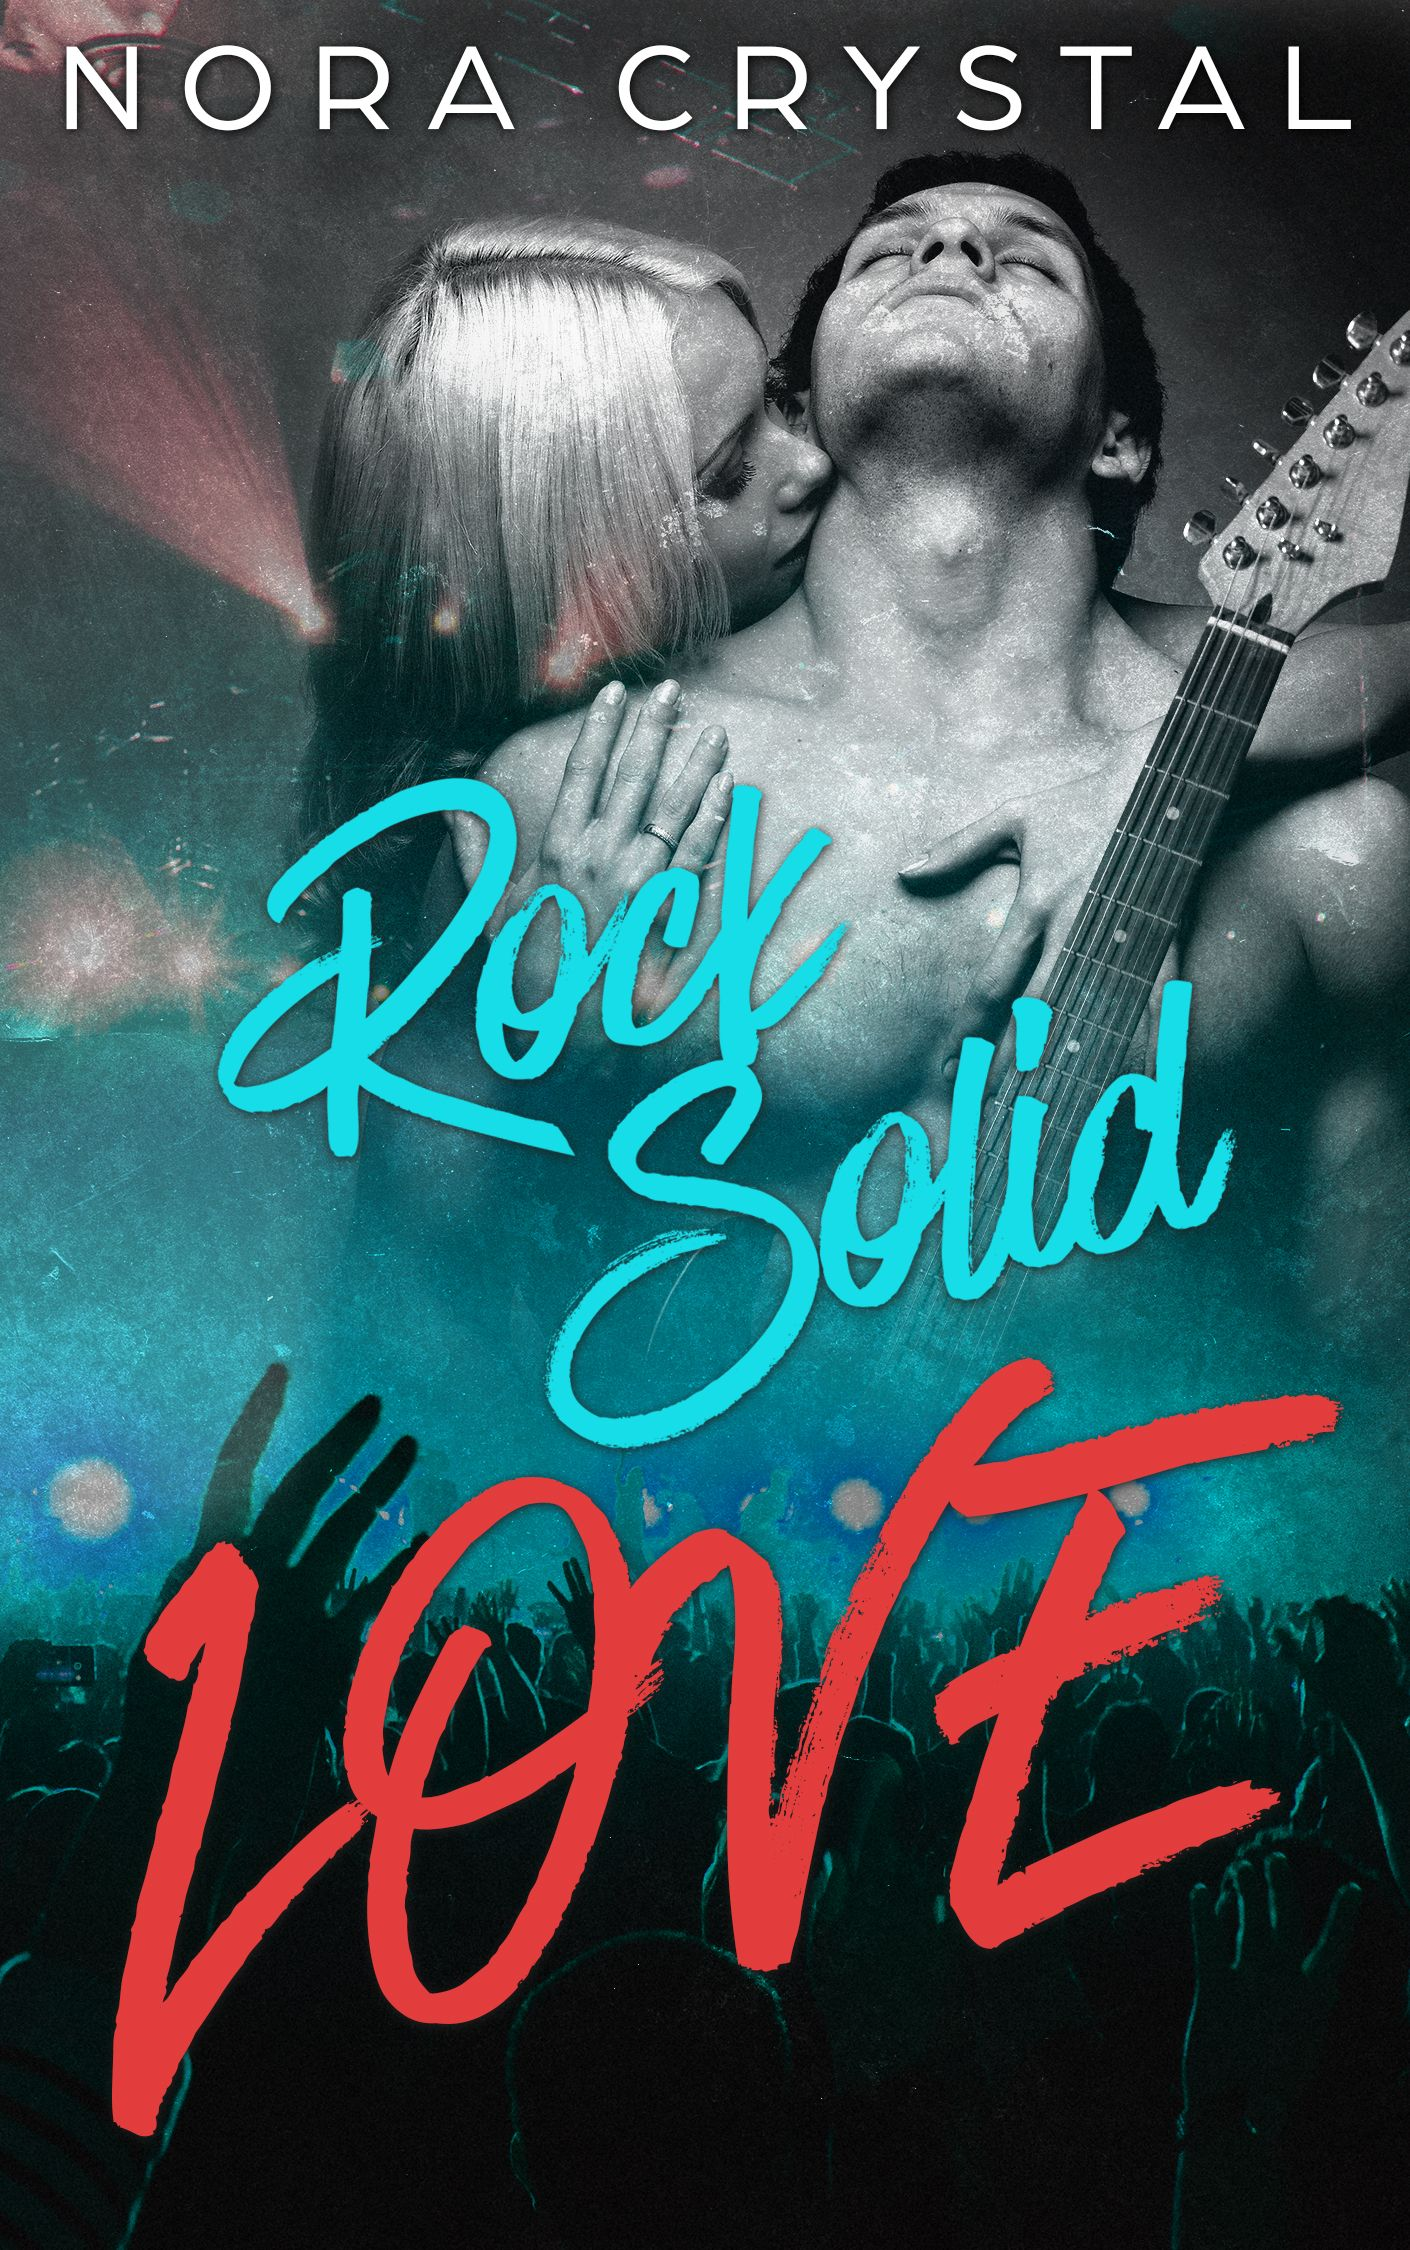 Rock solid love by nora crystal heart wrenching rockstar romance rock solid love by nora crystal heart wrenching rockstar romance 099 http fandeluxe Gallery